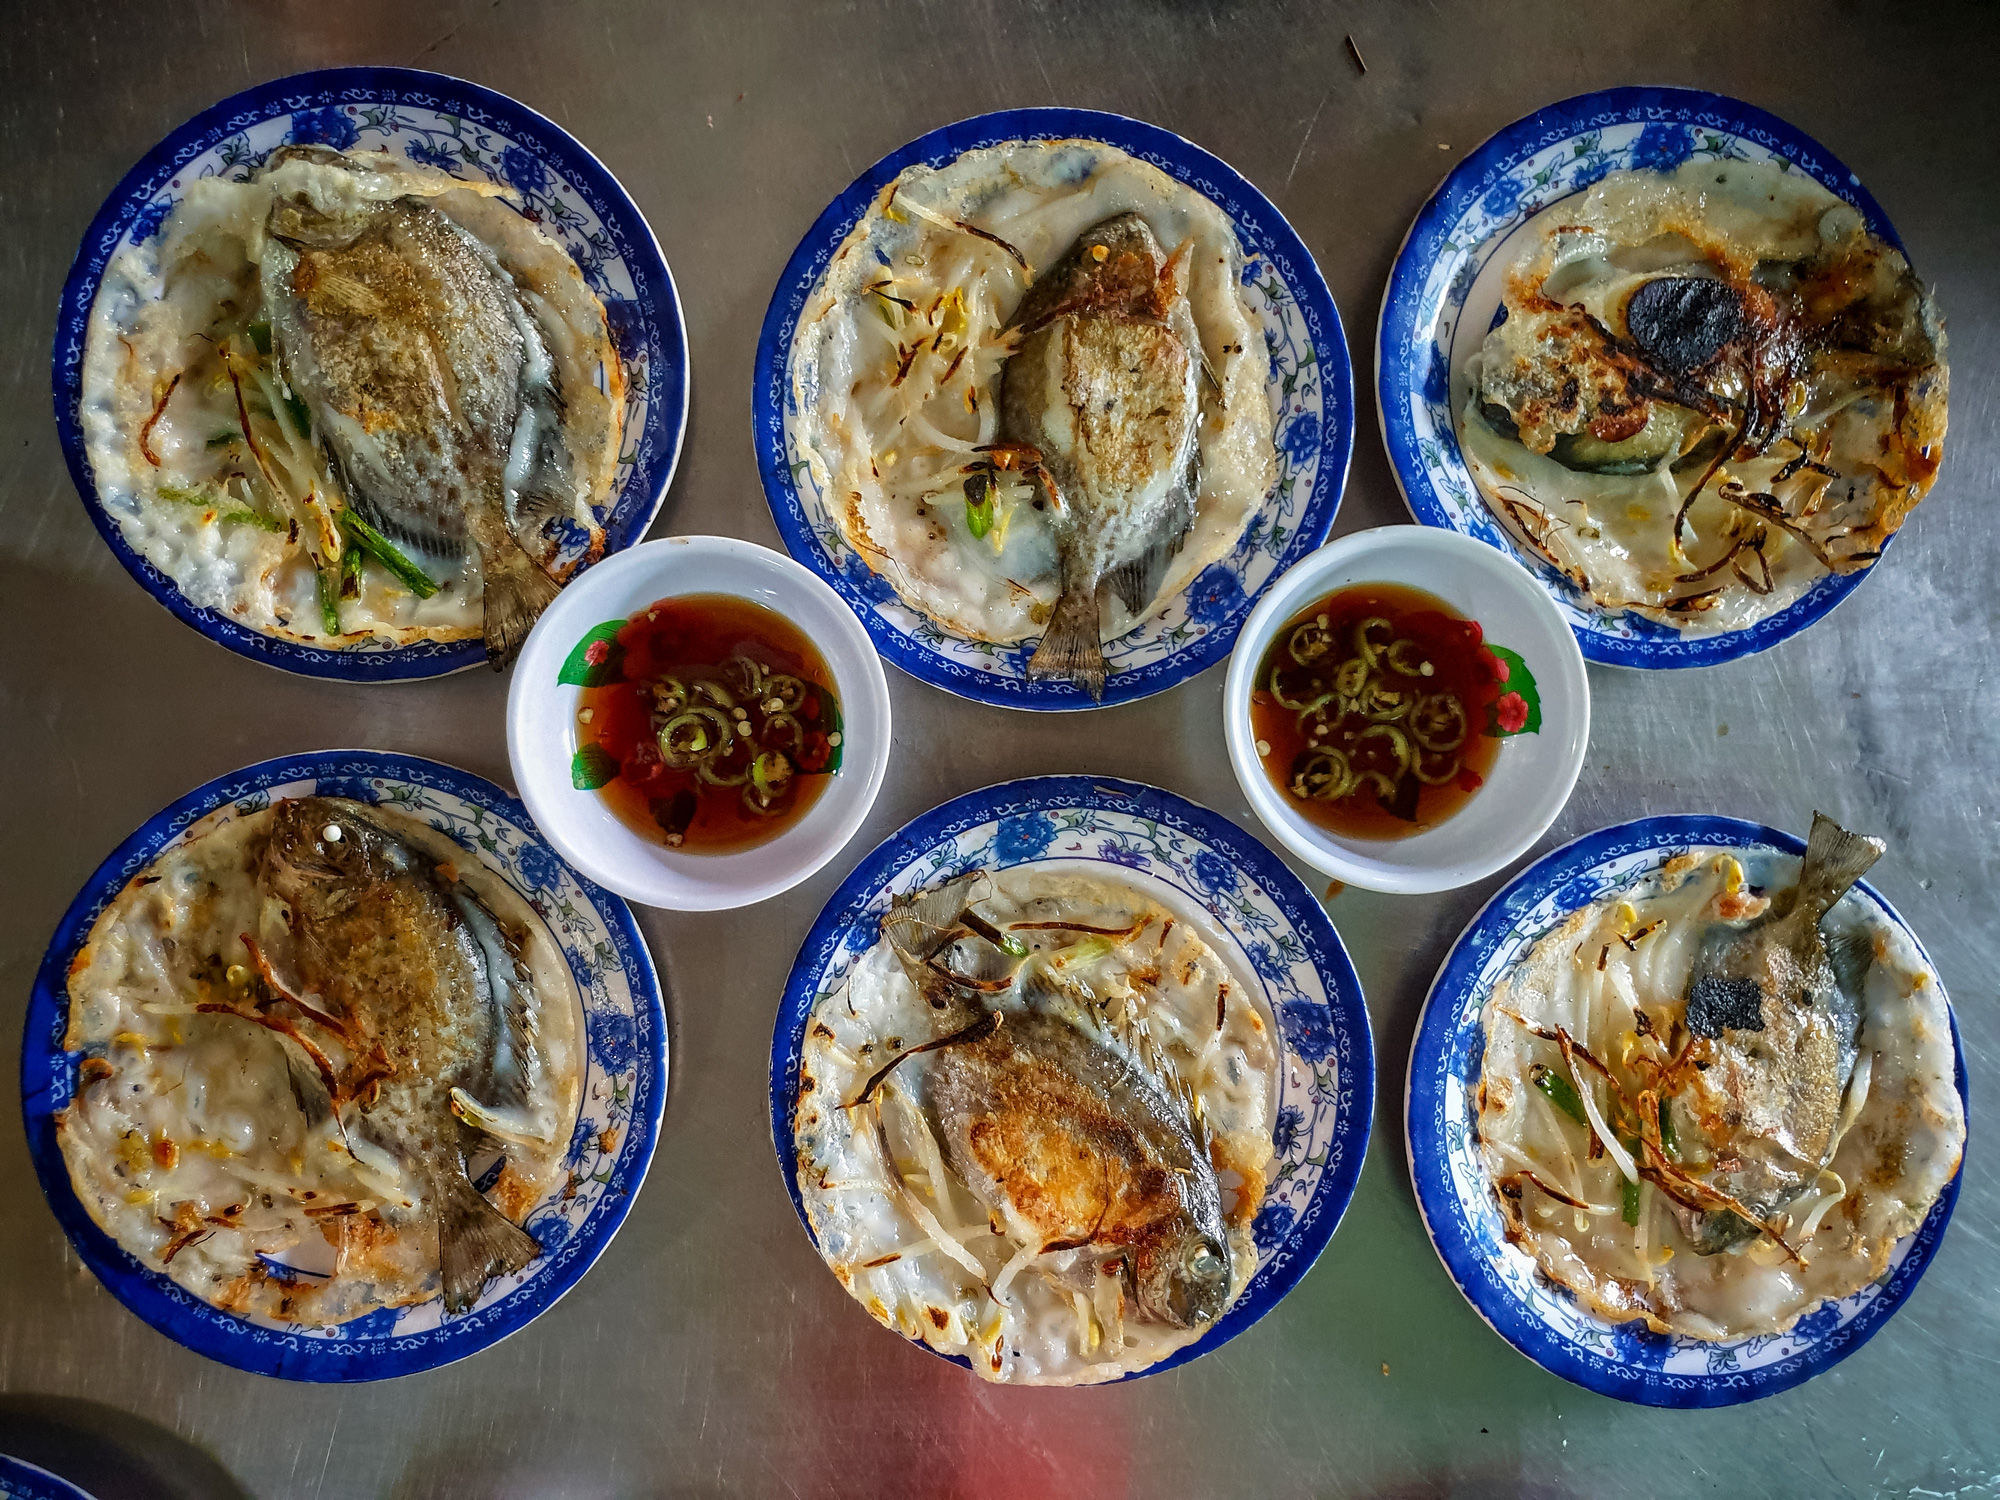 Servings of 'banh xeo' (Vietnamese pancake) served with ray-finned fish, a specialty of Hue, is a must for food lovers visiting the Tam Giang – Cau Hai Lagoon in Thua Thien-Hue Province, Vietnam. Photo: Kelvin Long / Tuoi Tre